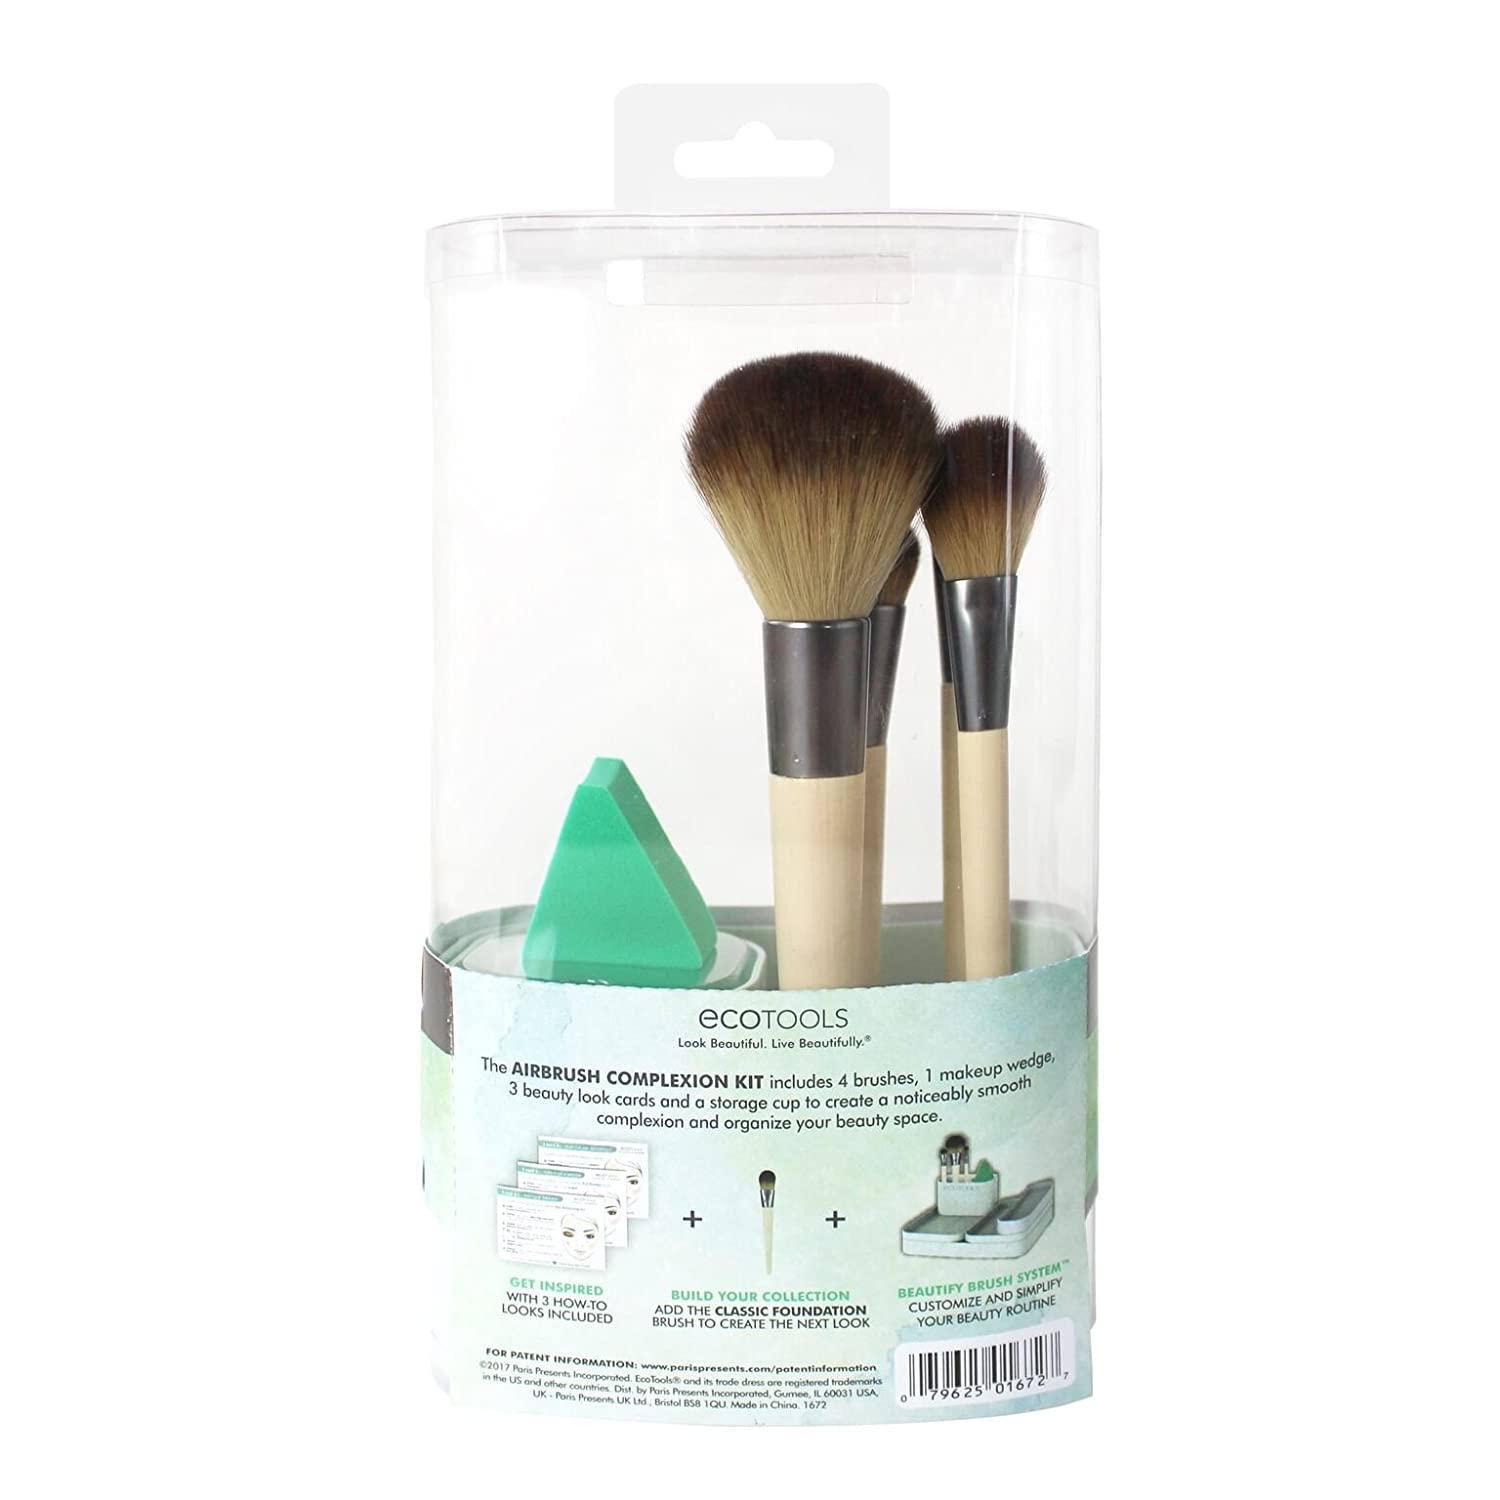 1 Ecotools Makeup Brush Tipos De Cancer Eco Tools 1600 Full Powder Amazoncom Airbrush Complexion Kit Includes Wedge 4 Brushes